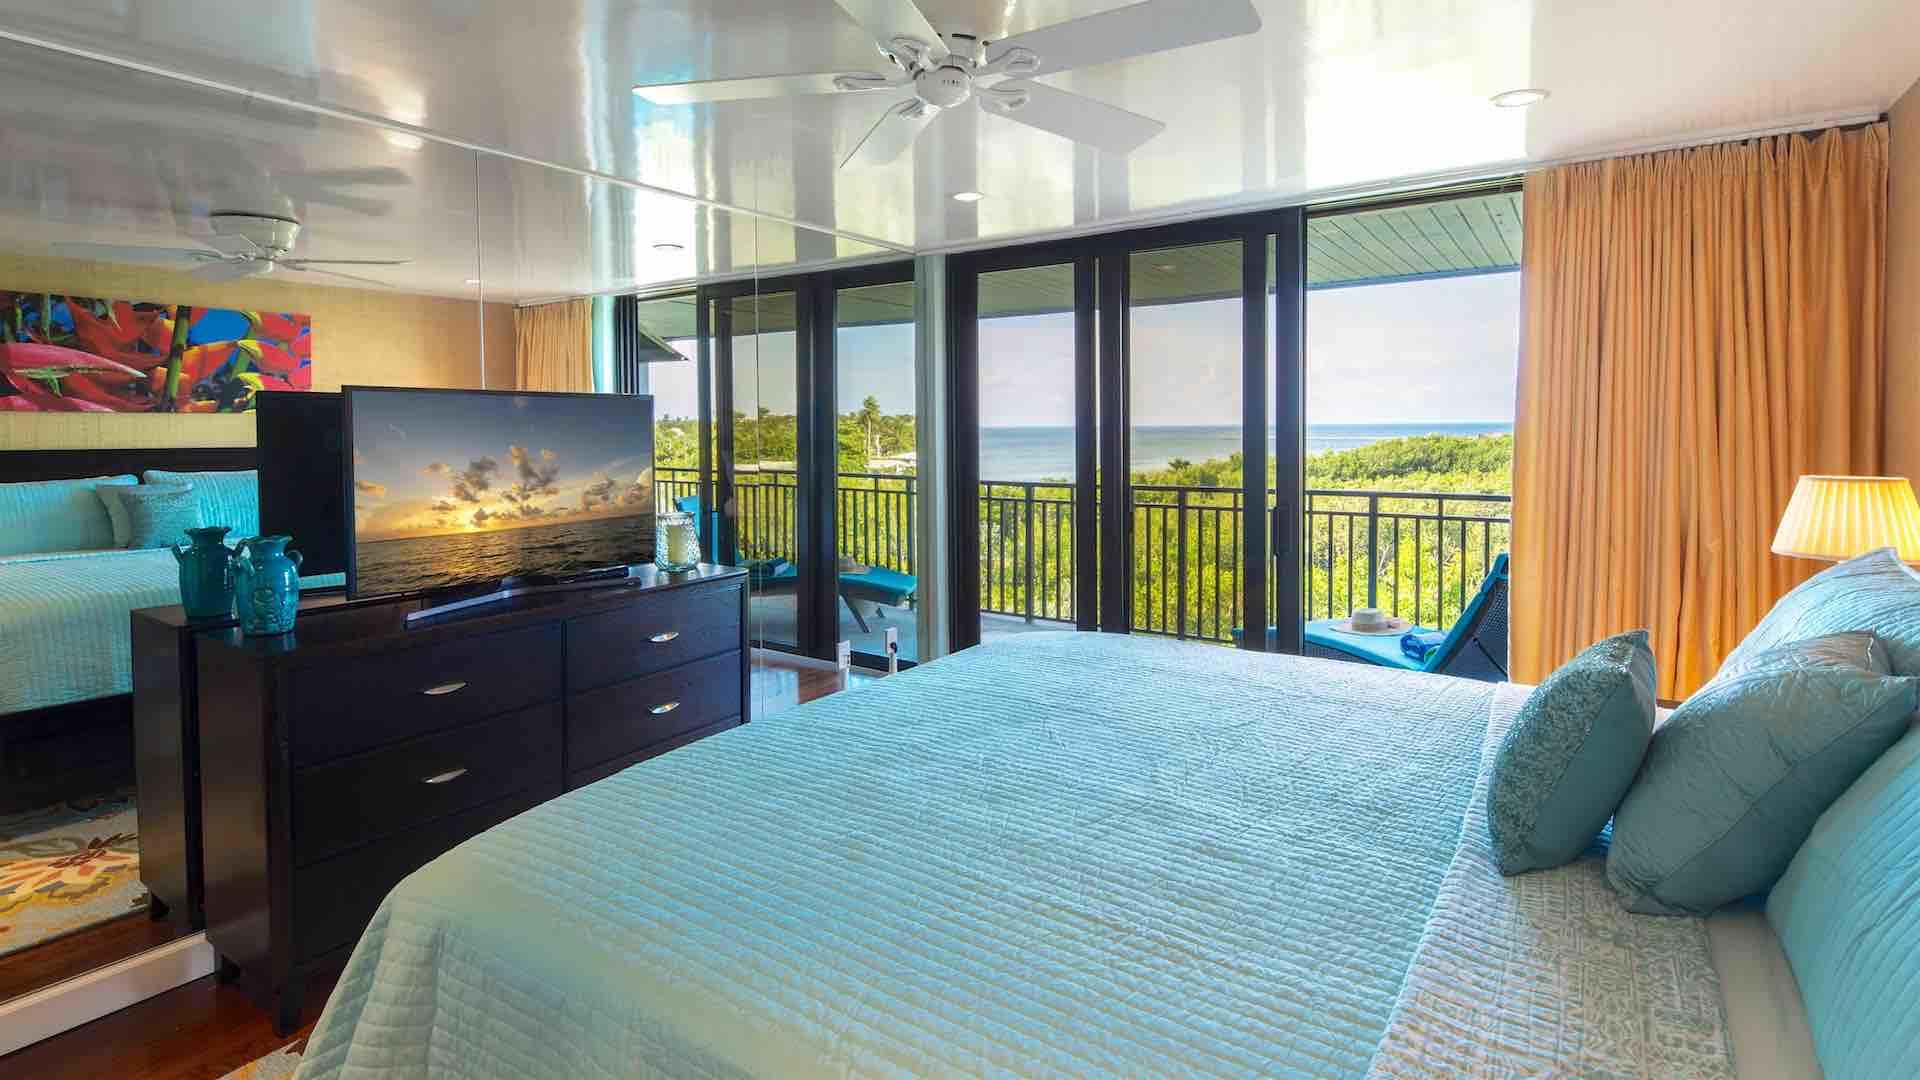 The master bedroom has a King bed and a flat screen TV...